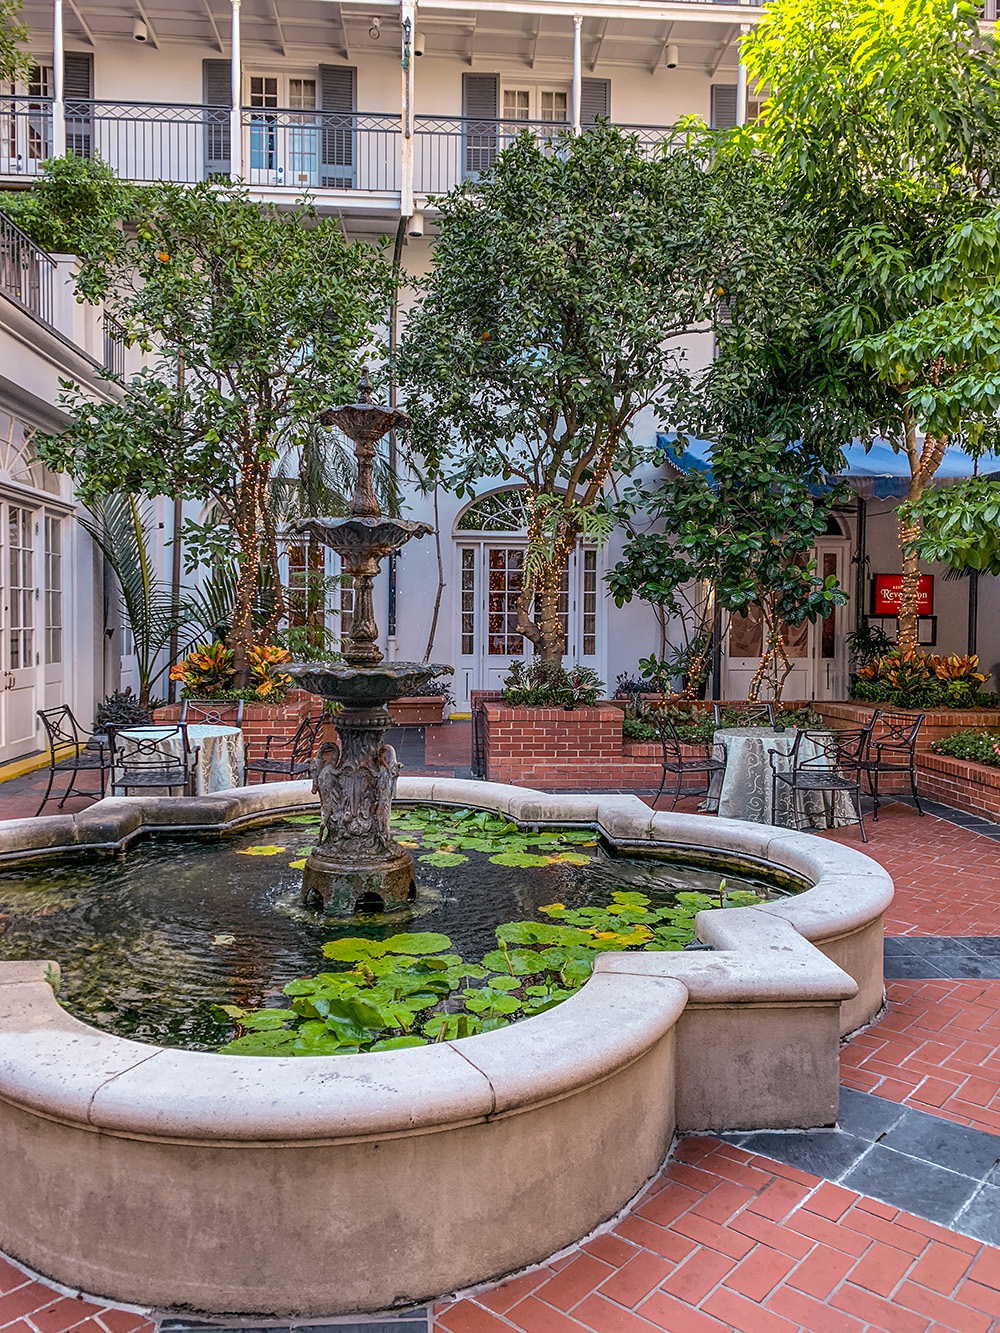 Charming hotel in New Orleans